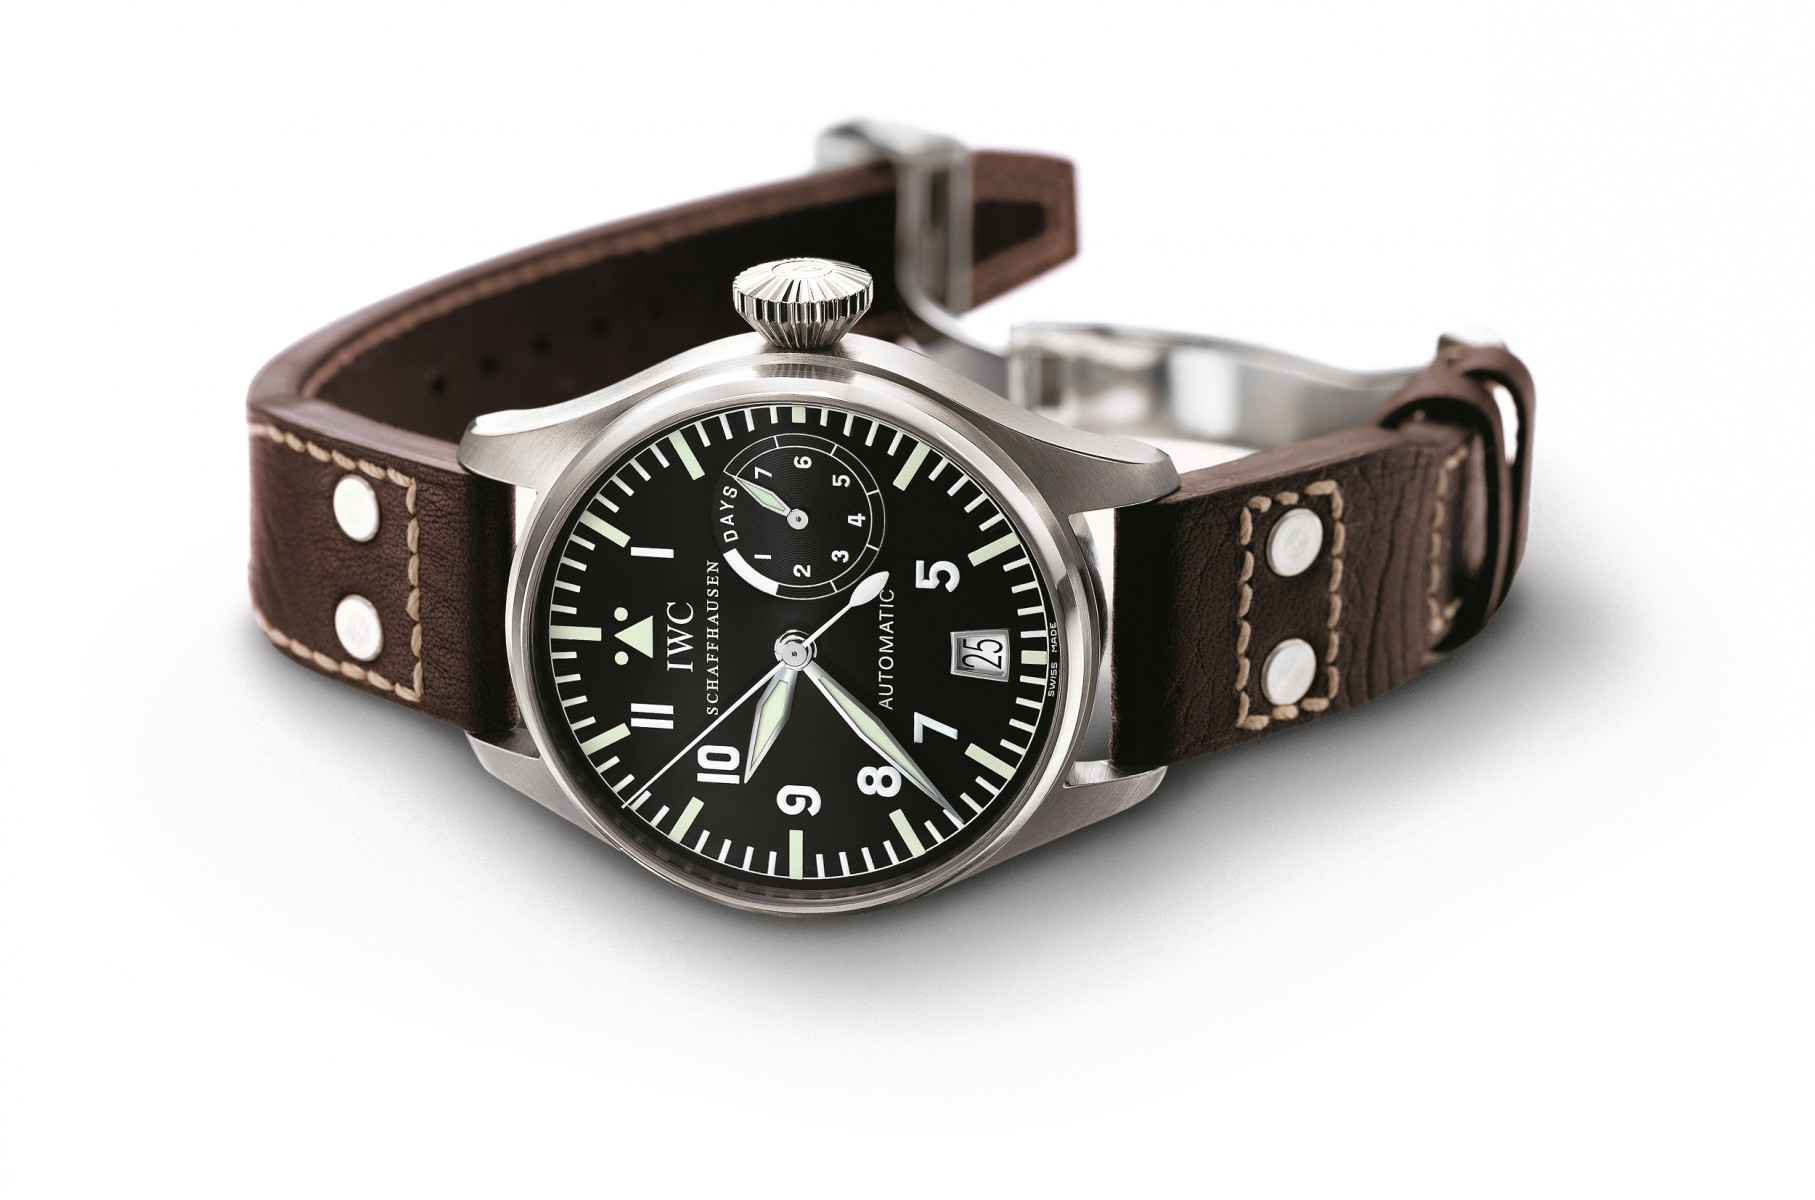 2002 Big Pilot's Watch Reference 5002